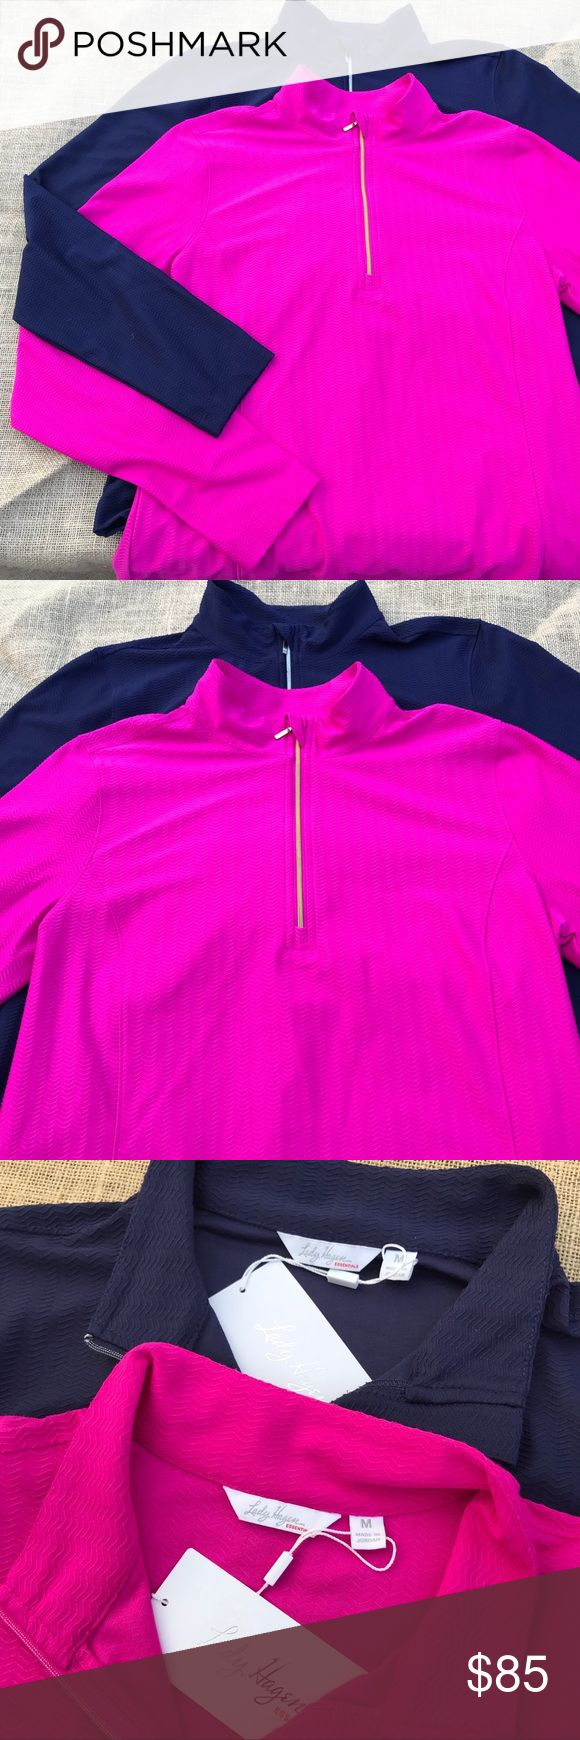 2 Lady Hagen essentials quart zipper long sleeve Bundle Set of 2 Lady Hagen quarter zip long sleeve shirt. Colors are pink berry, navy eclipse. Has UV protection along with hydrodri fabric keeps you cool and dry by moving sweat away from your skin. I personally use these for working out and they are beyond amazing in wicking away moisture. Retail $50 each. Lady Hagen Tops Tees - Long Sleeve